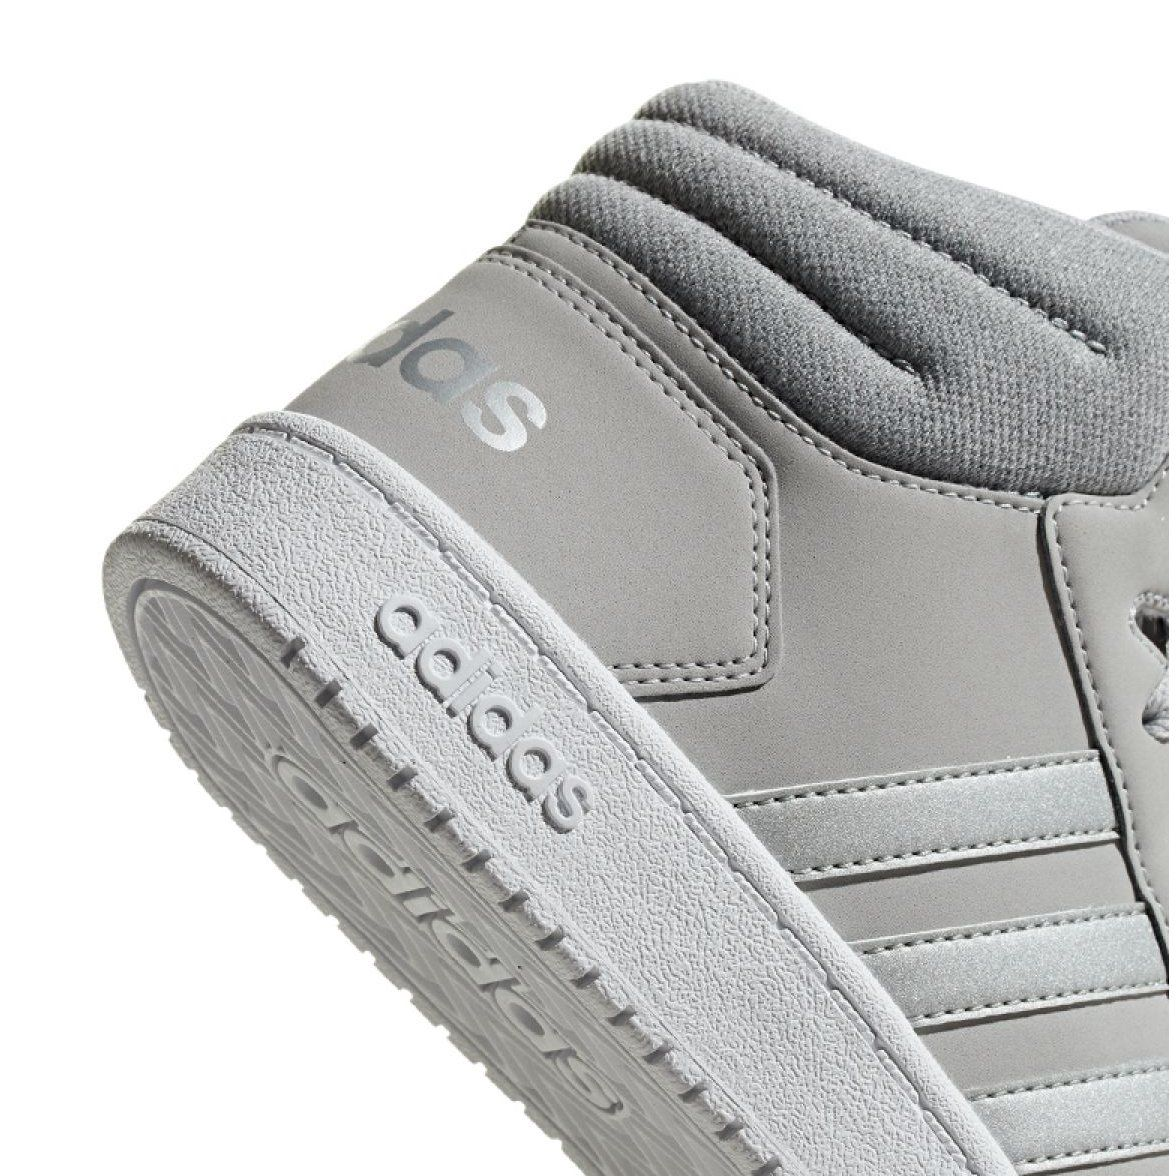 Buty Adidas Hoops Mid 2 0 K Jr F35796 Szare Adidas Baby Shoes Shoes